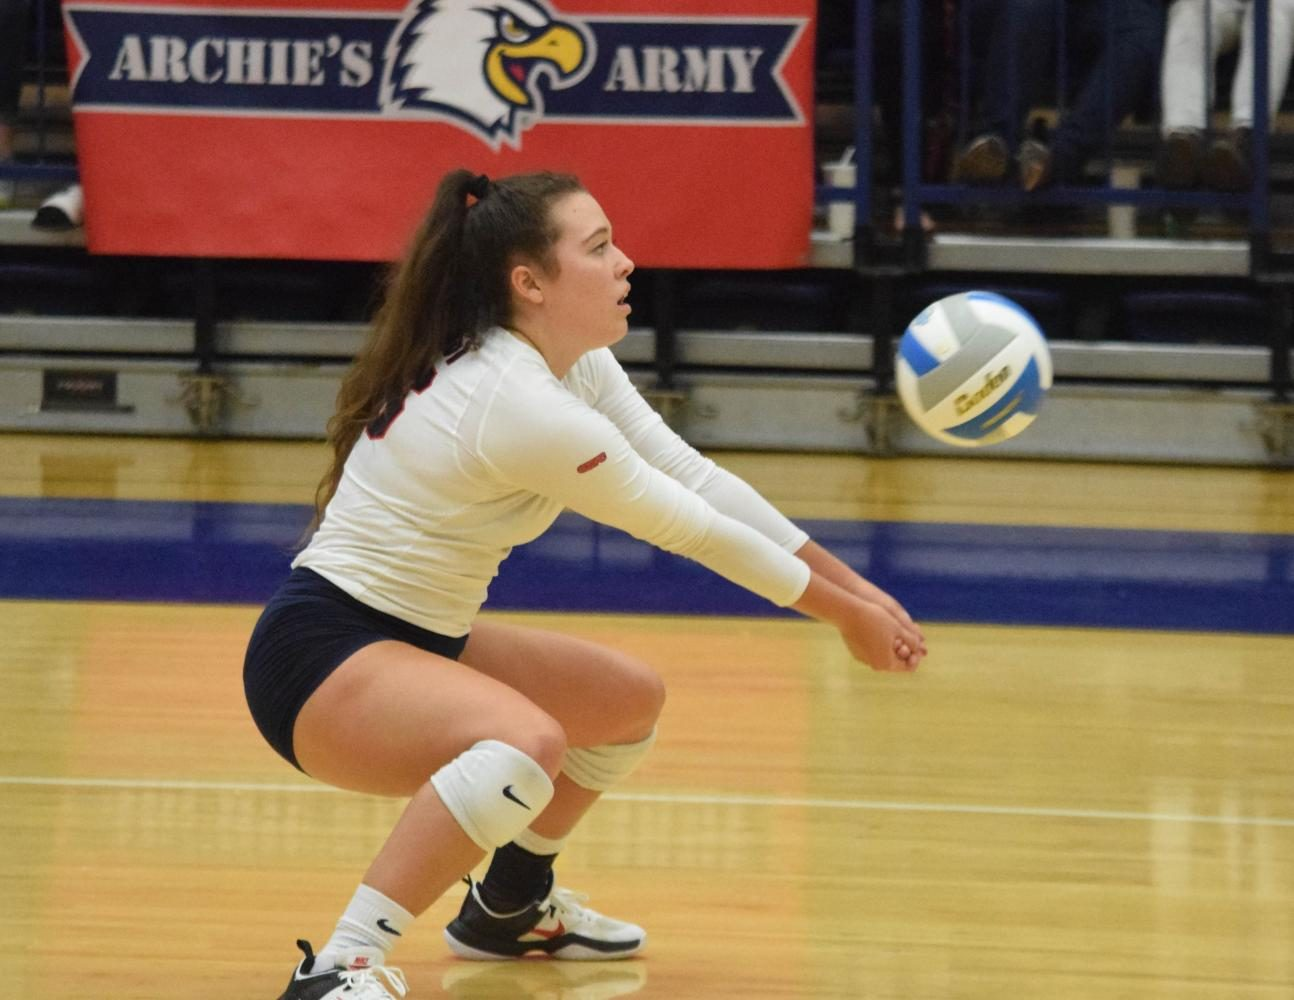 Haley Limper, junior defensive specialist, prepares to hit the ball.